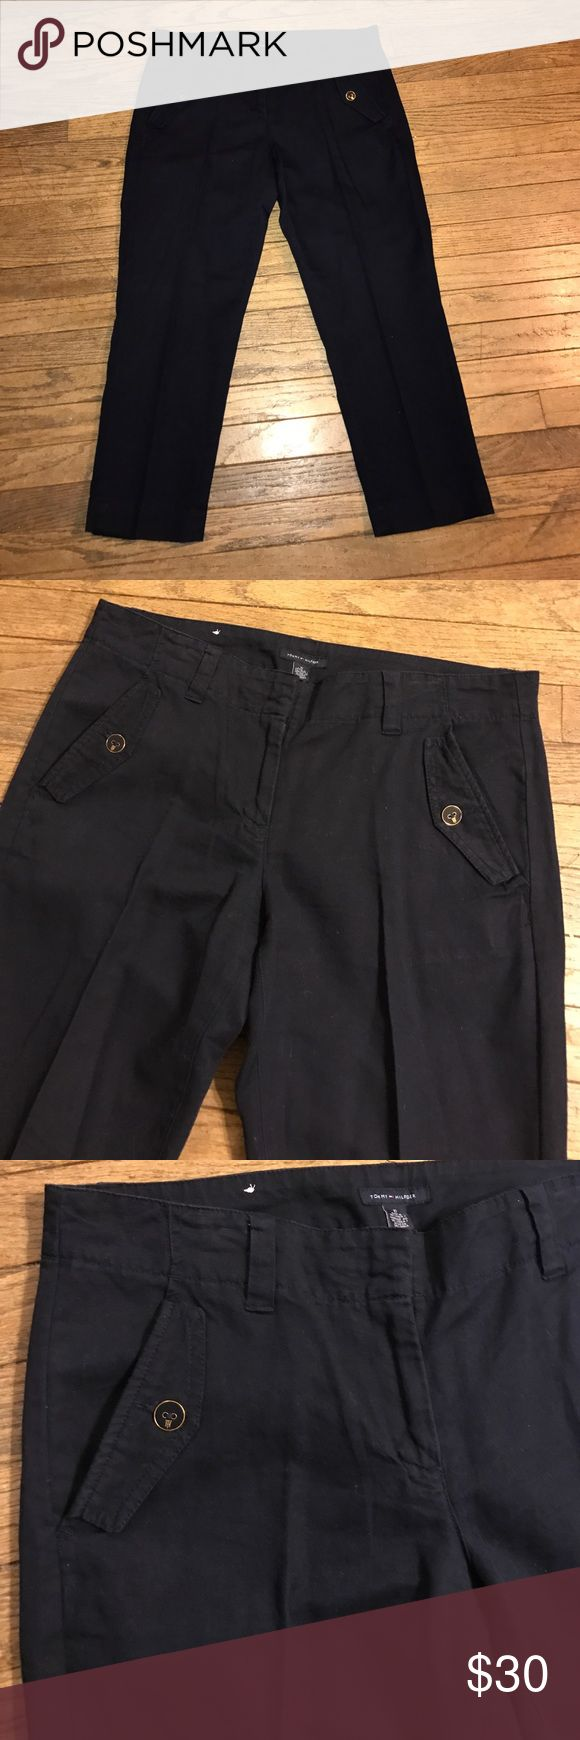 Tommy Hilfiger Ankle Pants Khaki material Navy Ankle pants from Tommy Hilfiger. Adorable and in excellent condition. Worn once. Look great with gray or white tops. From a smoke free home. Tommy Hilfiger Pants Ankle & Cropped